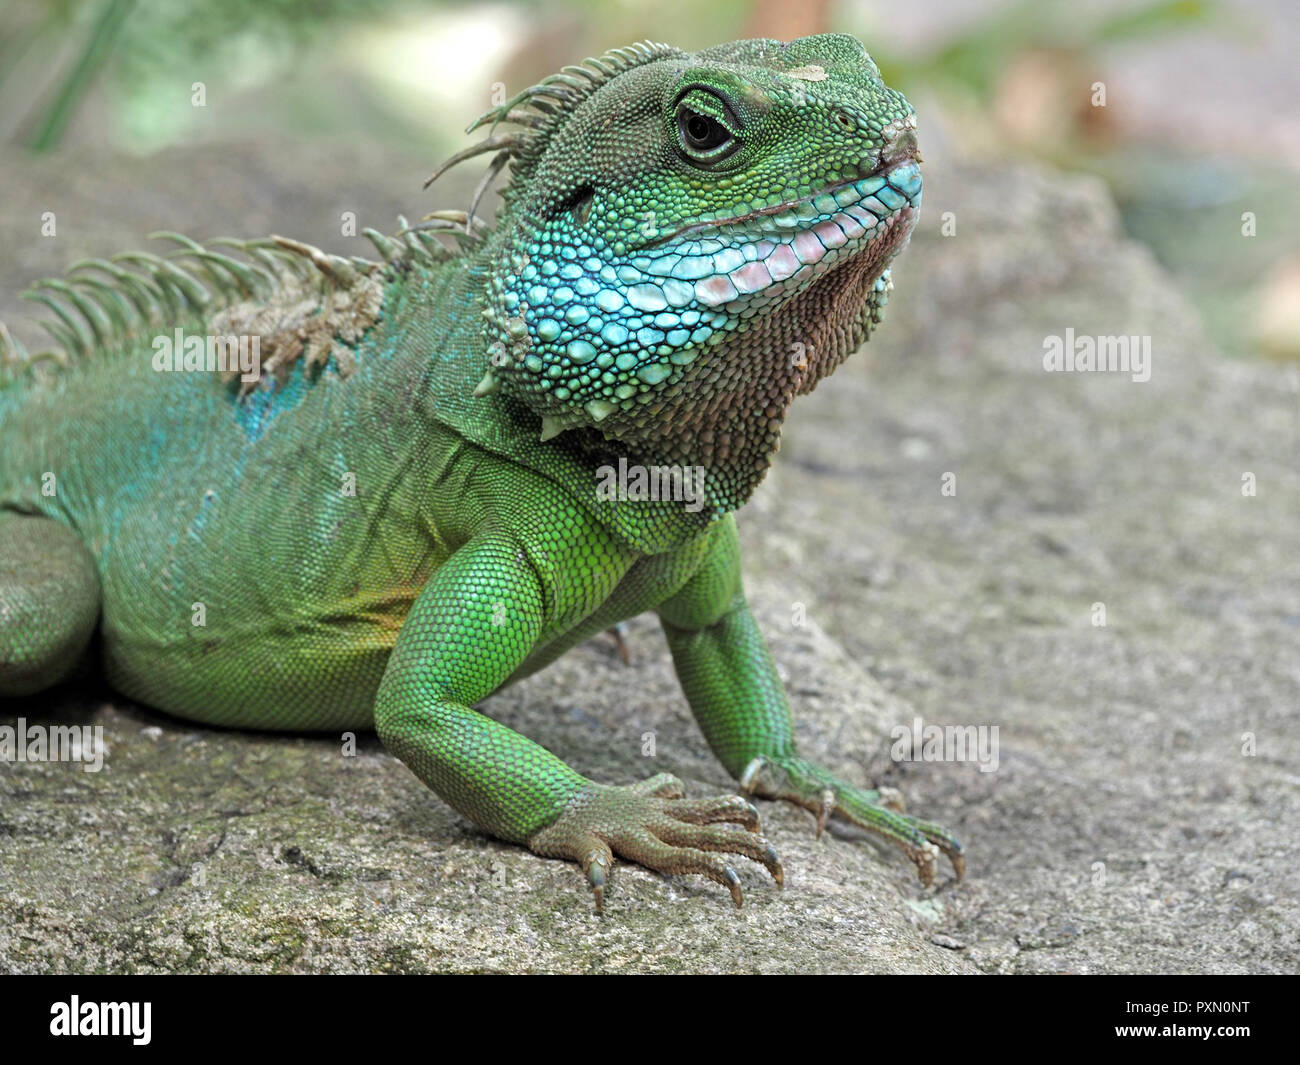 Exotic captive male Chinese Water Dragon (Physignathus cocincinus) an agamid with crested scaly green body and blue cheeks,sloughing skin - Stock Image